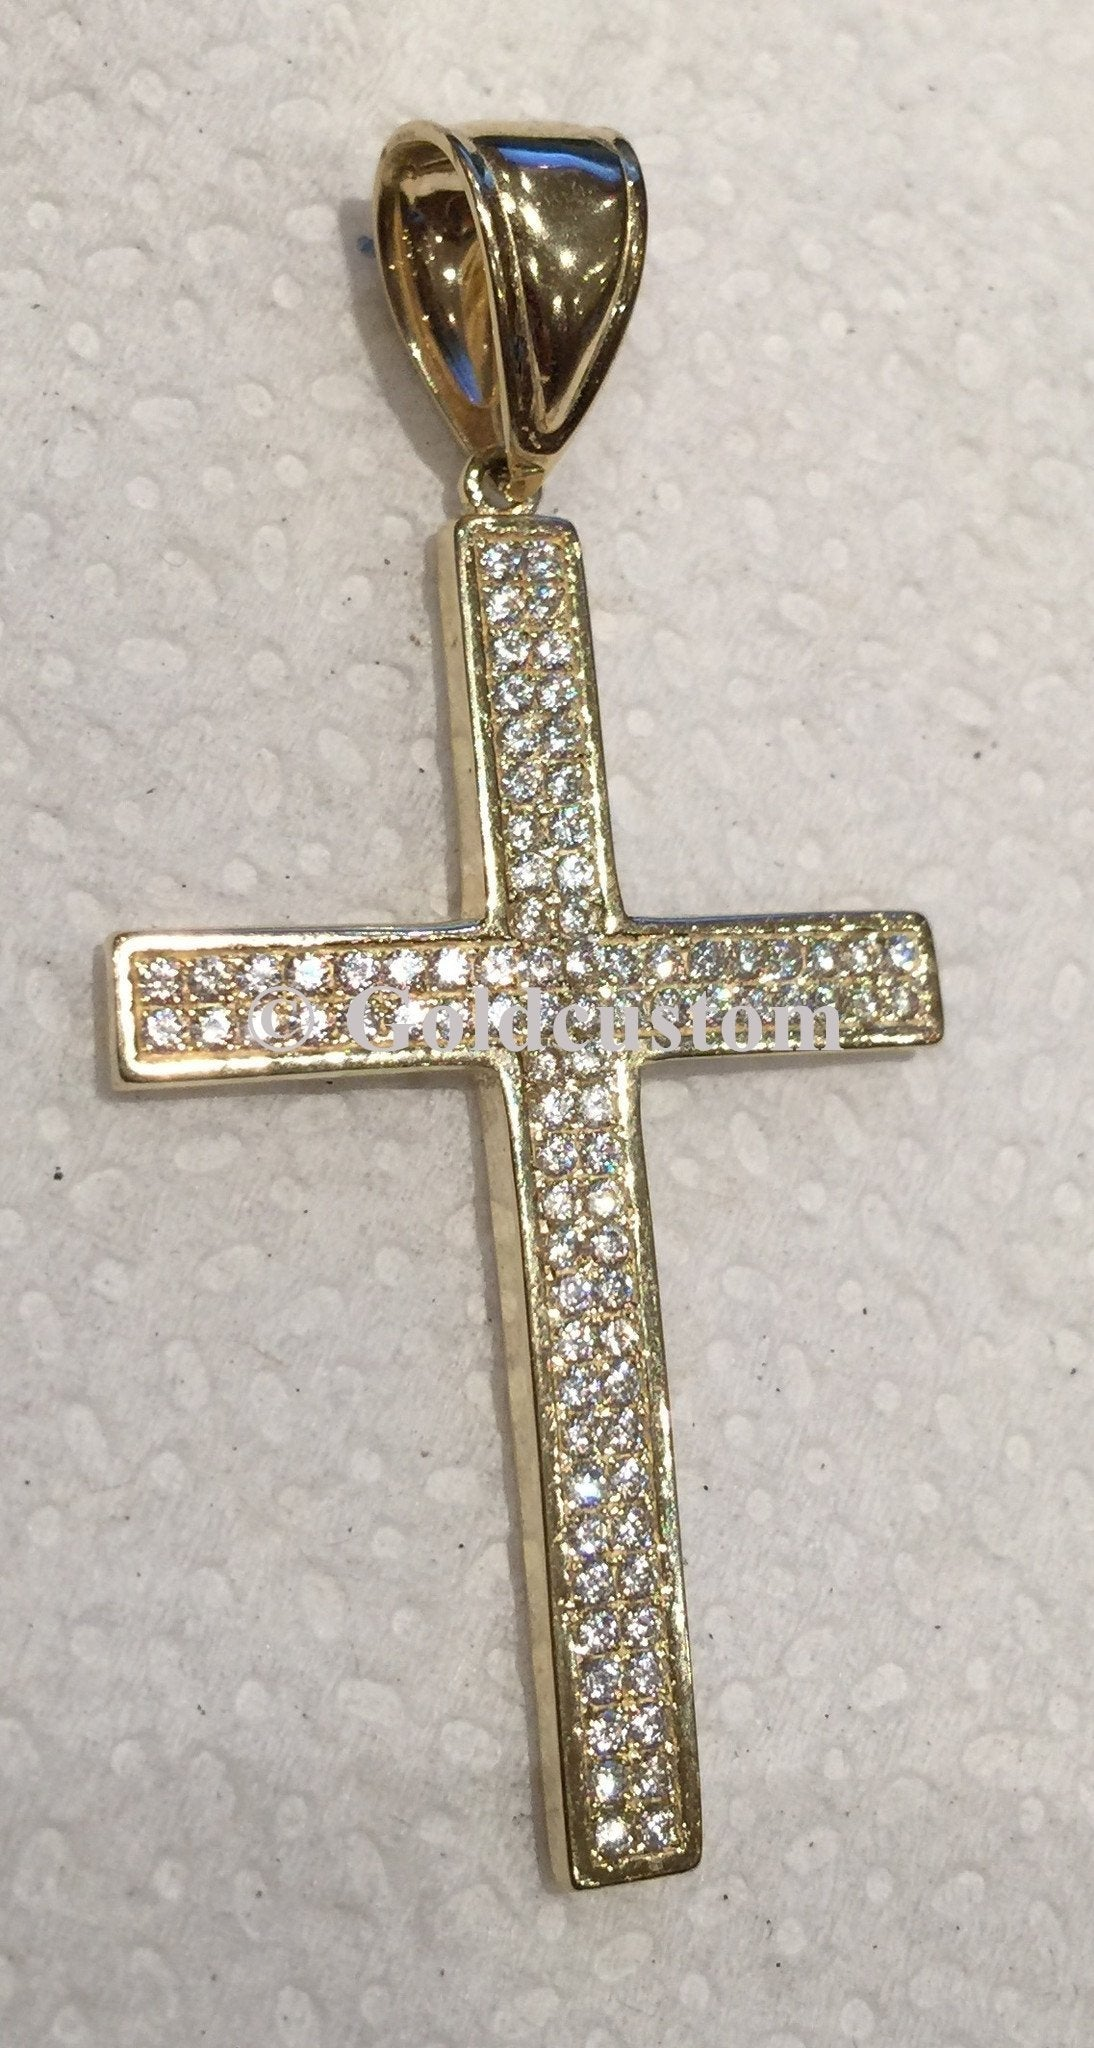 10k Yellow Gold Cross Florencia Pendant 4.02 gram Men Pendant - orquebec